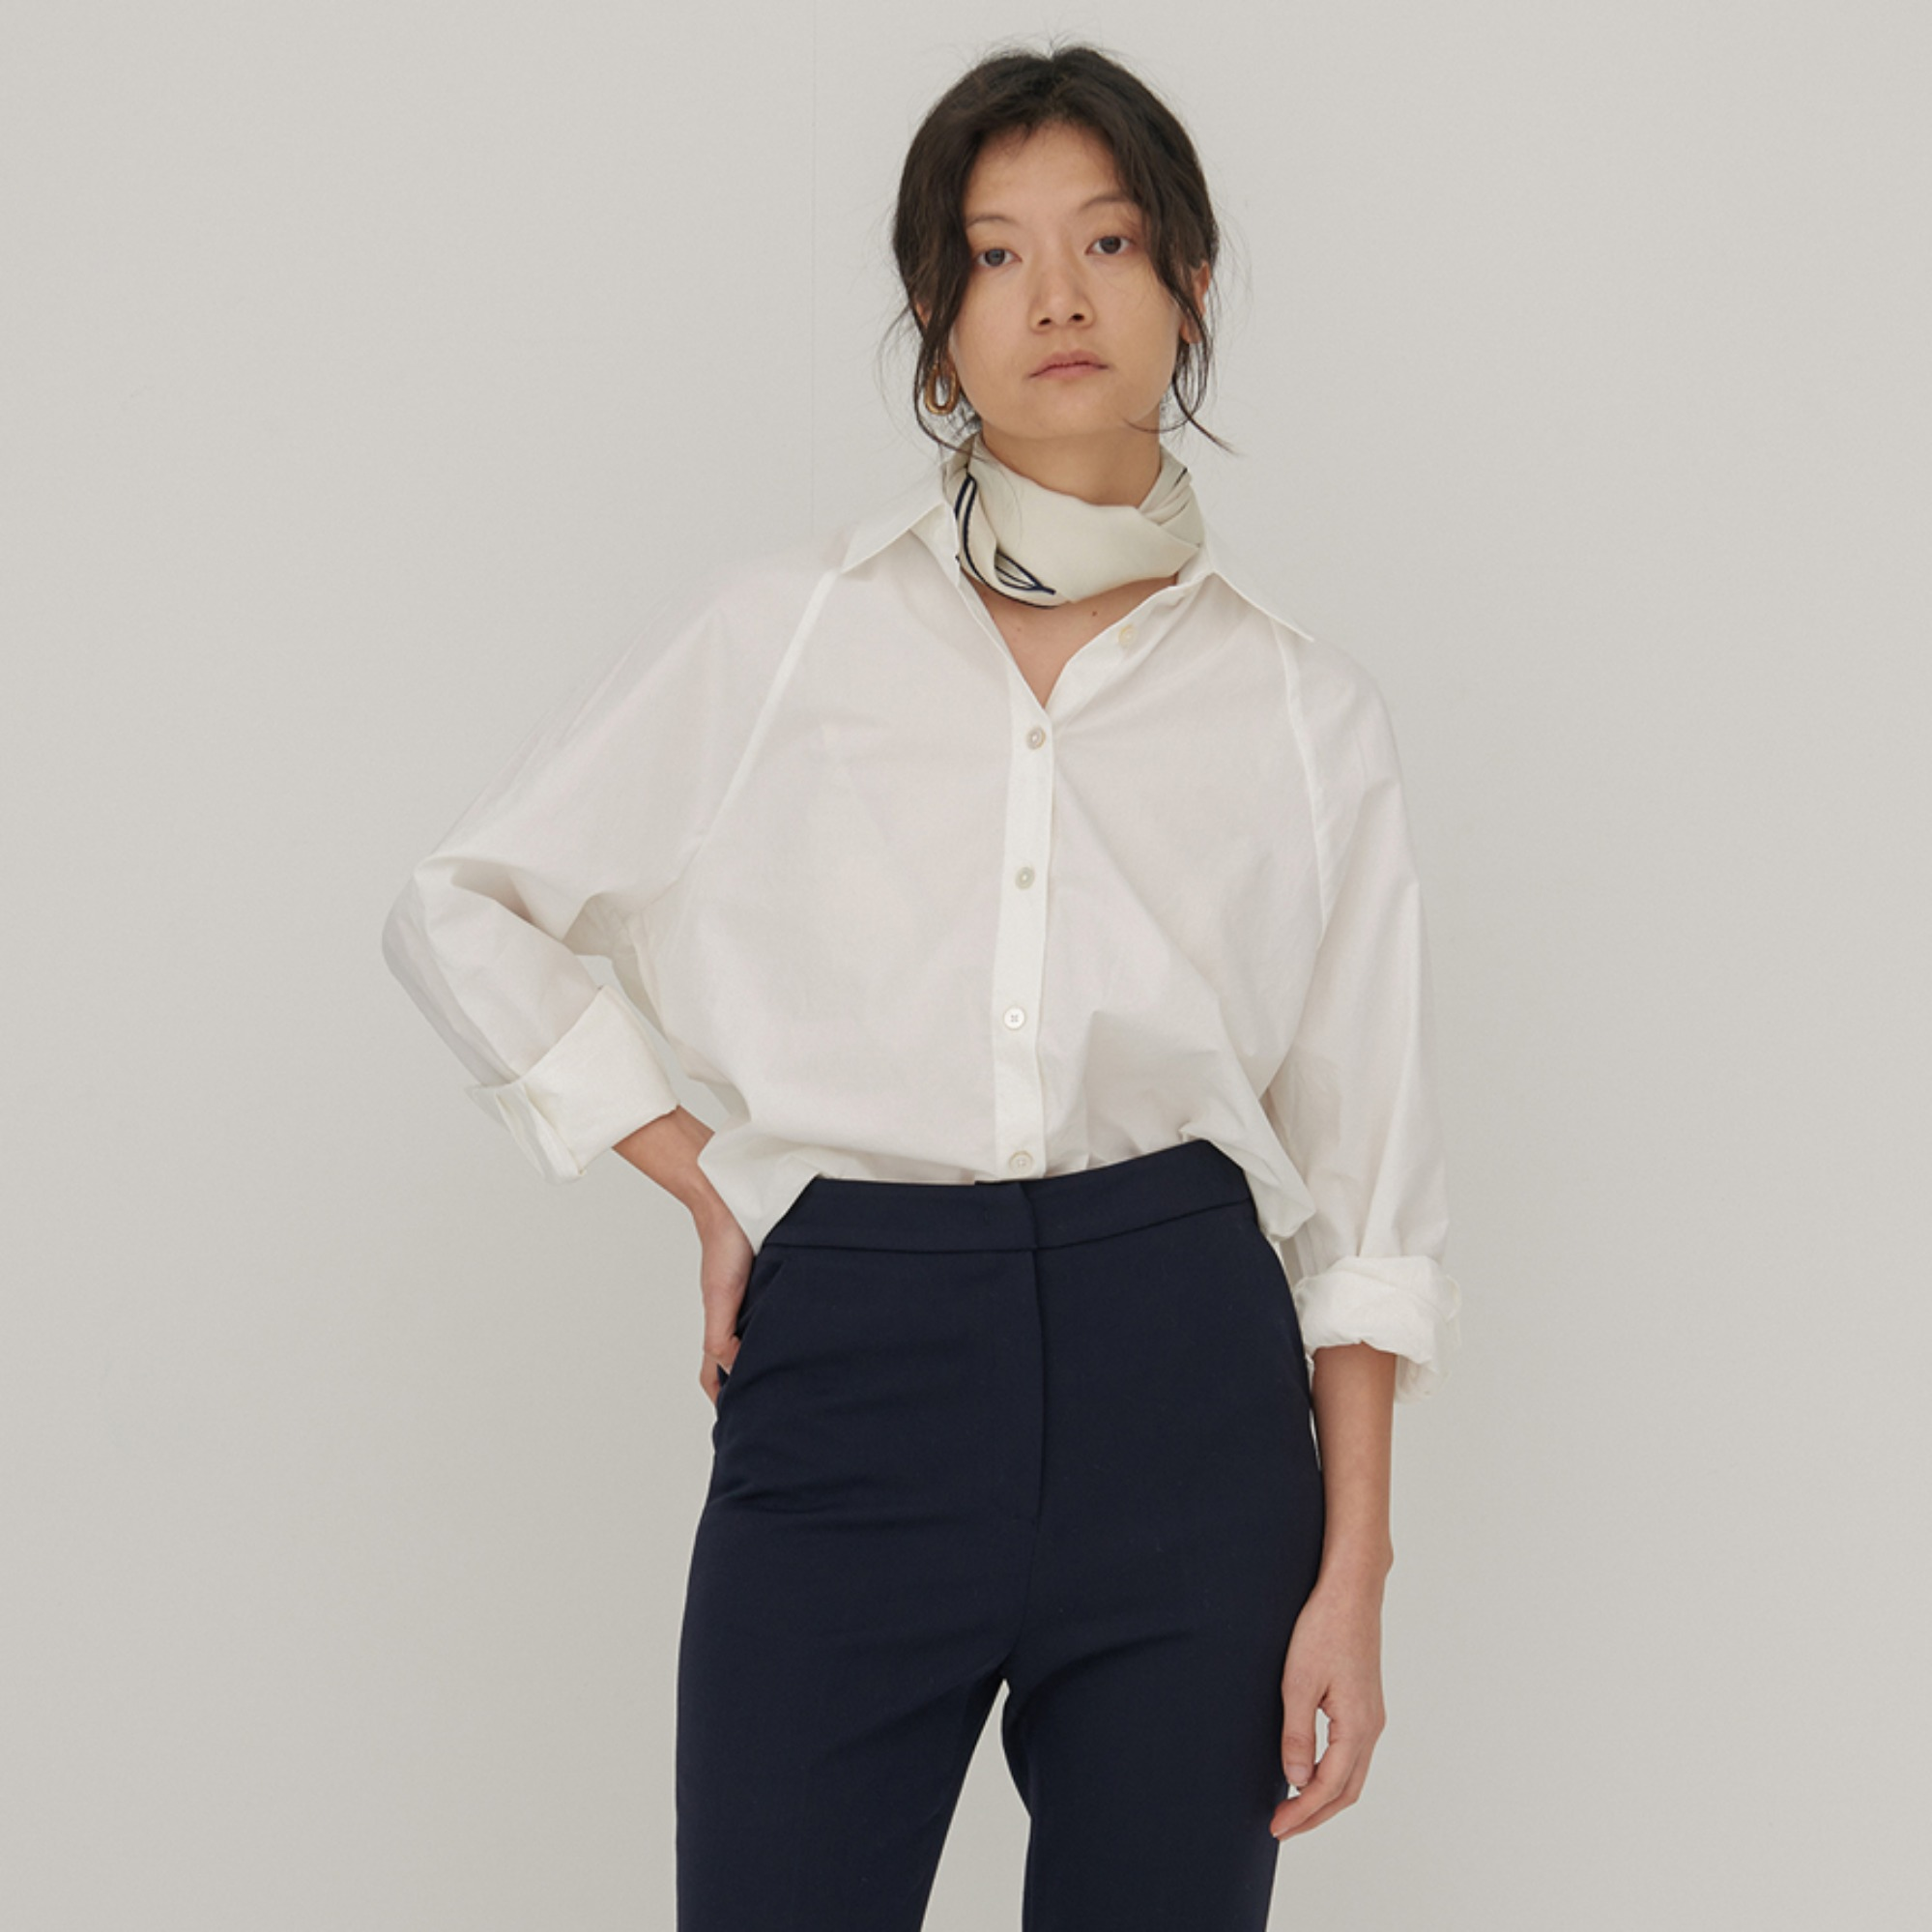 Rag cotton shirts